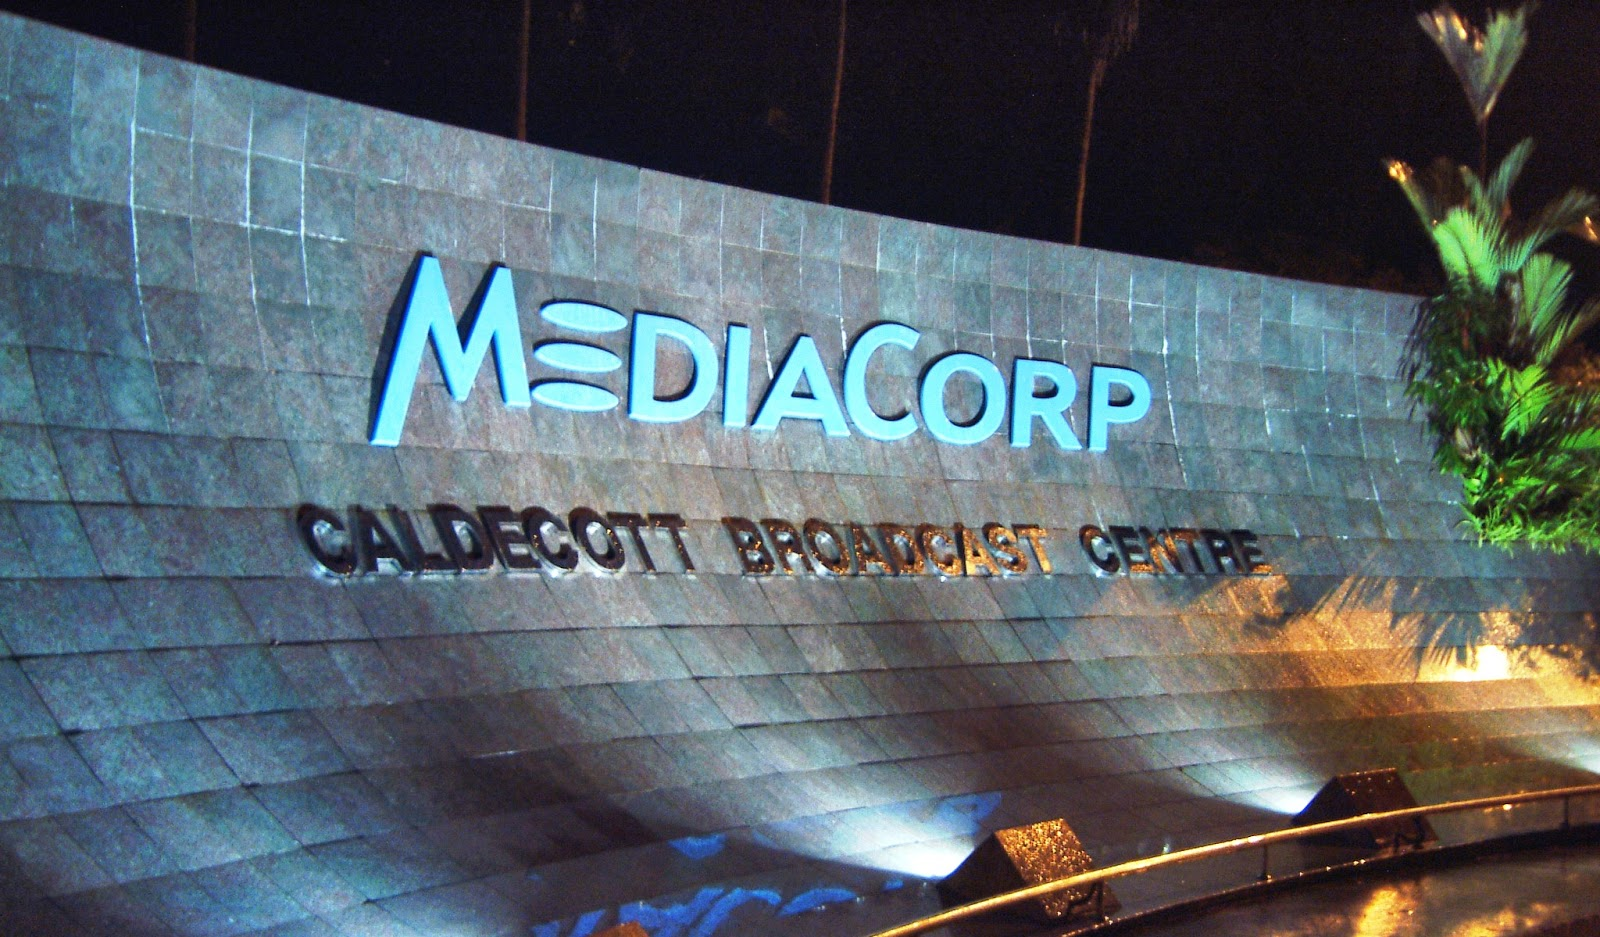 Mediacorp celebrates 80 years with a series of initiatives